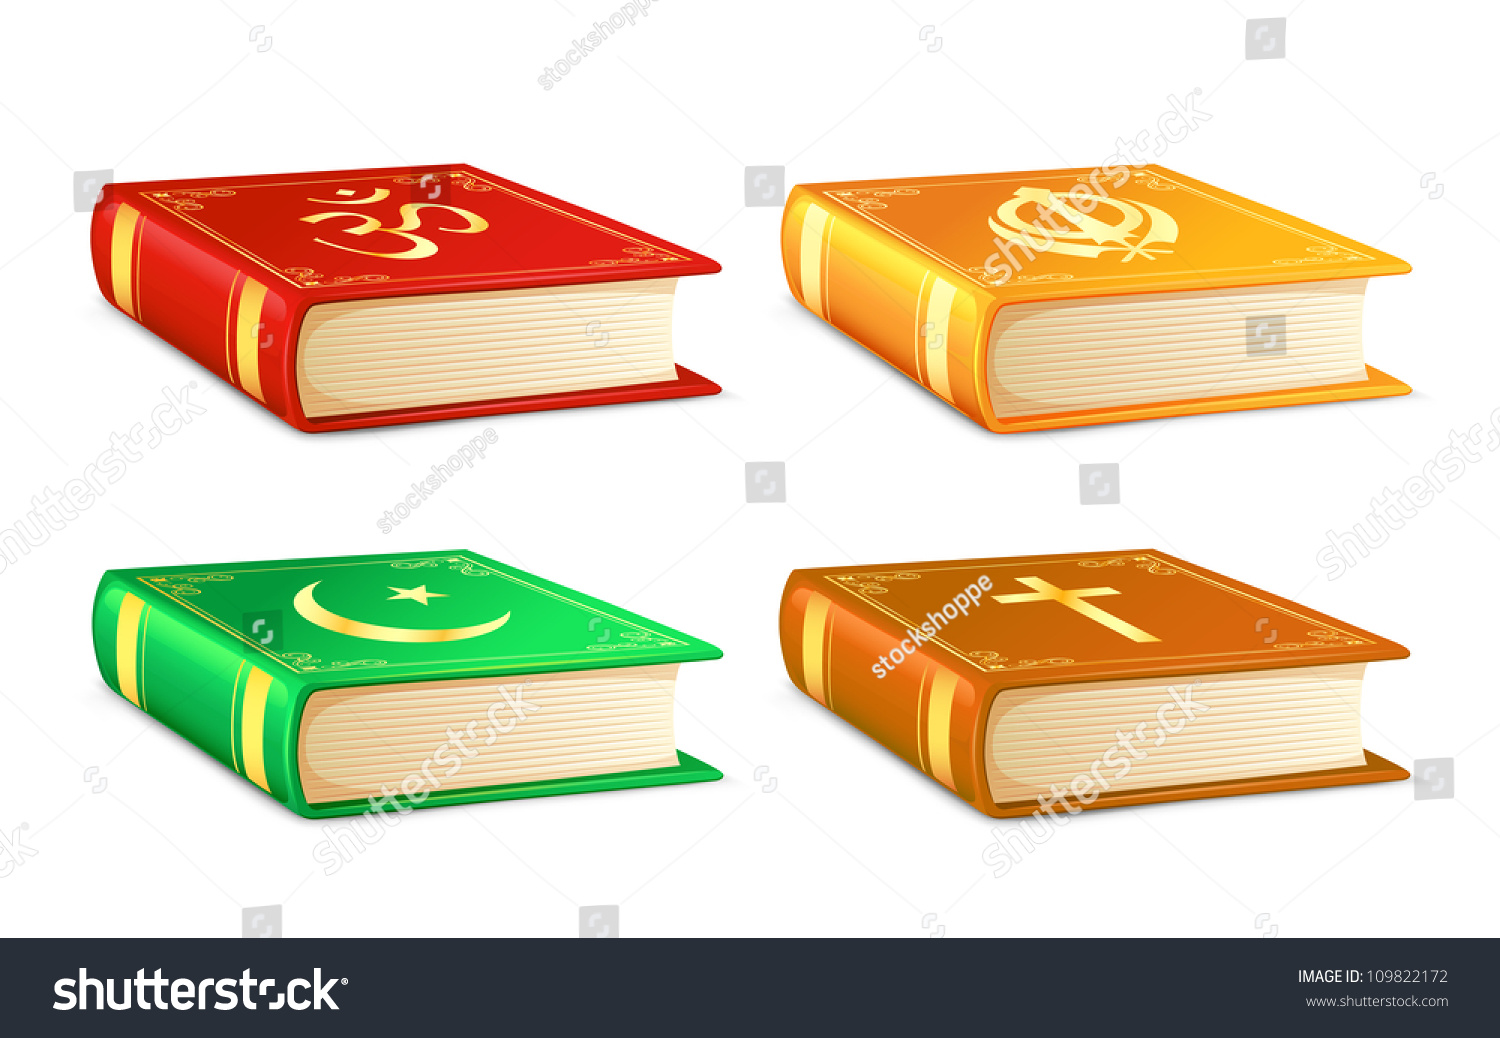 Vector Illustration Holy Book Different Religion Stock Vector ...